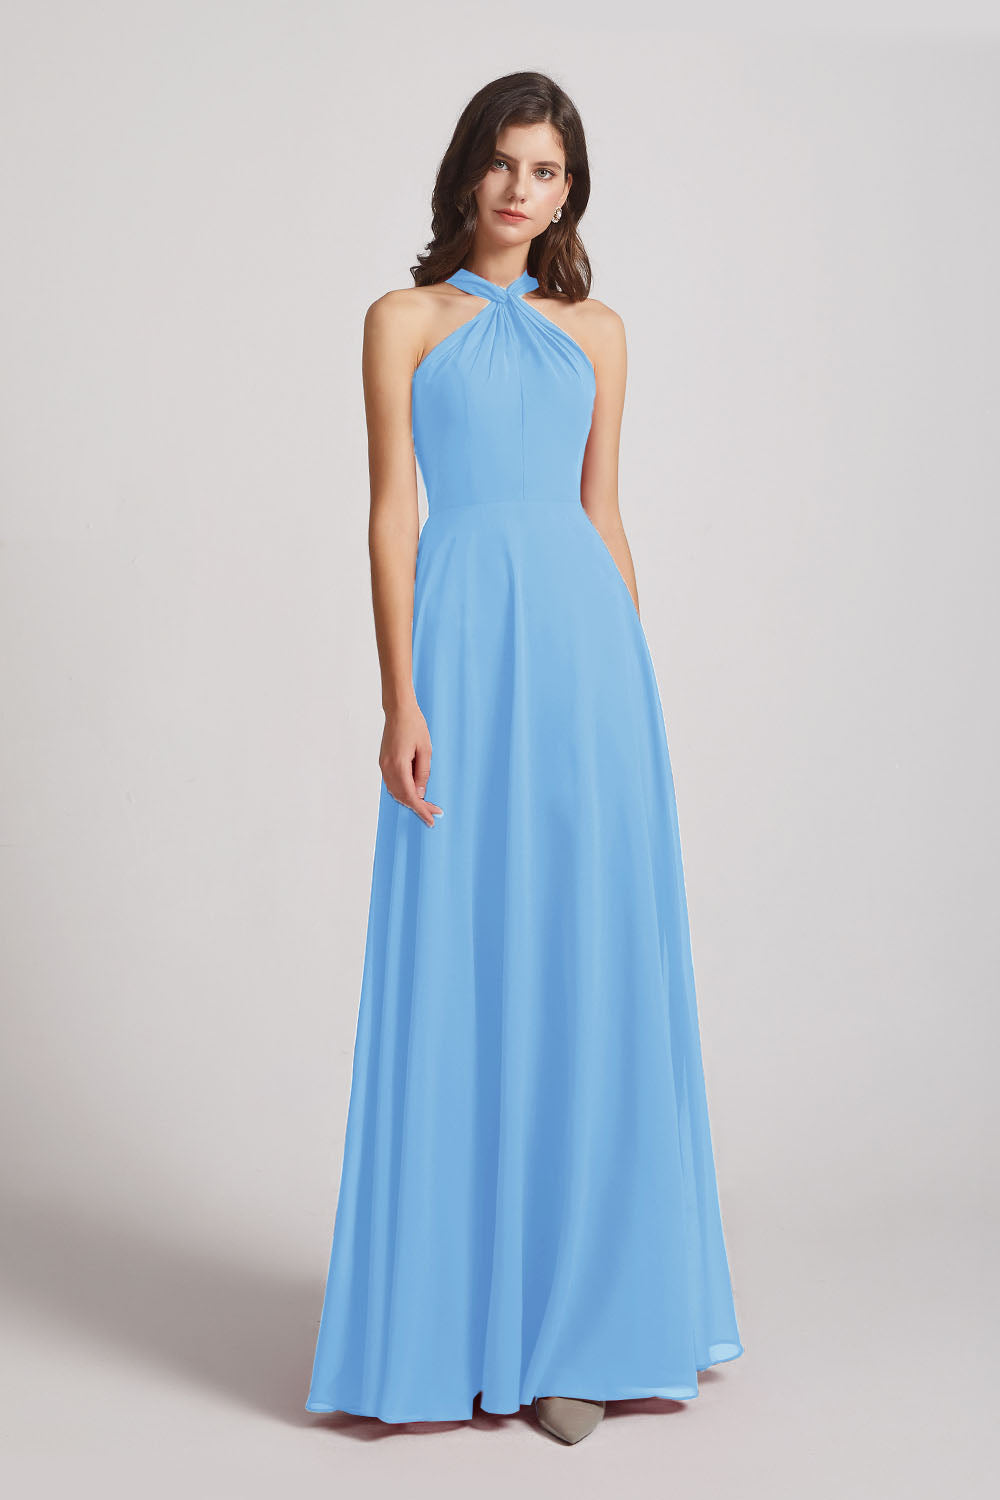 Alfa Bridal Periwinkle Floor Length Chiffon Bridesmaid Dresses with Criss Cross Neckline (AF0113)